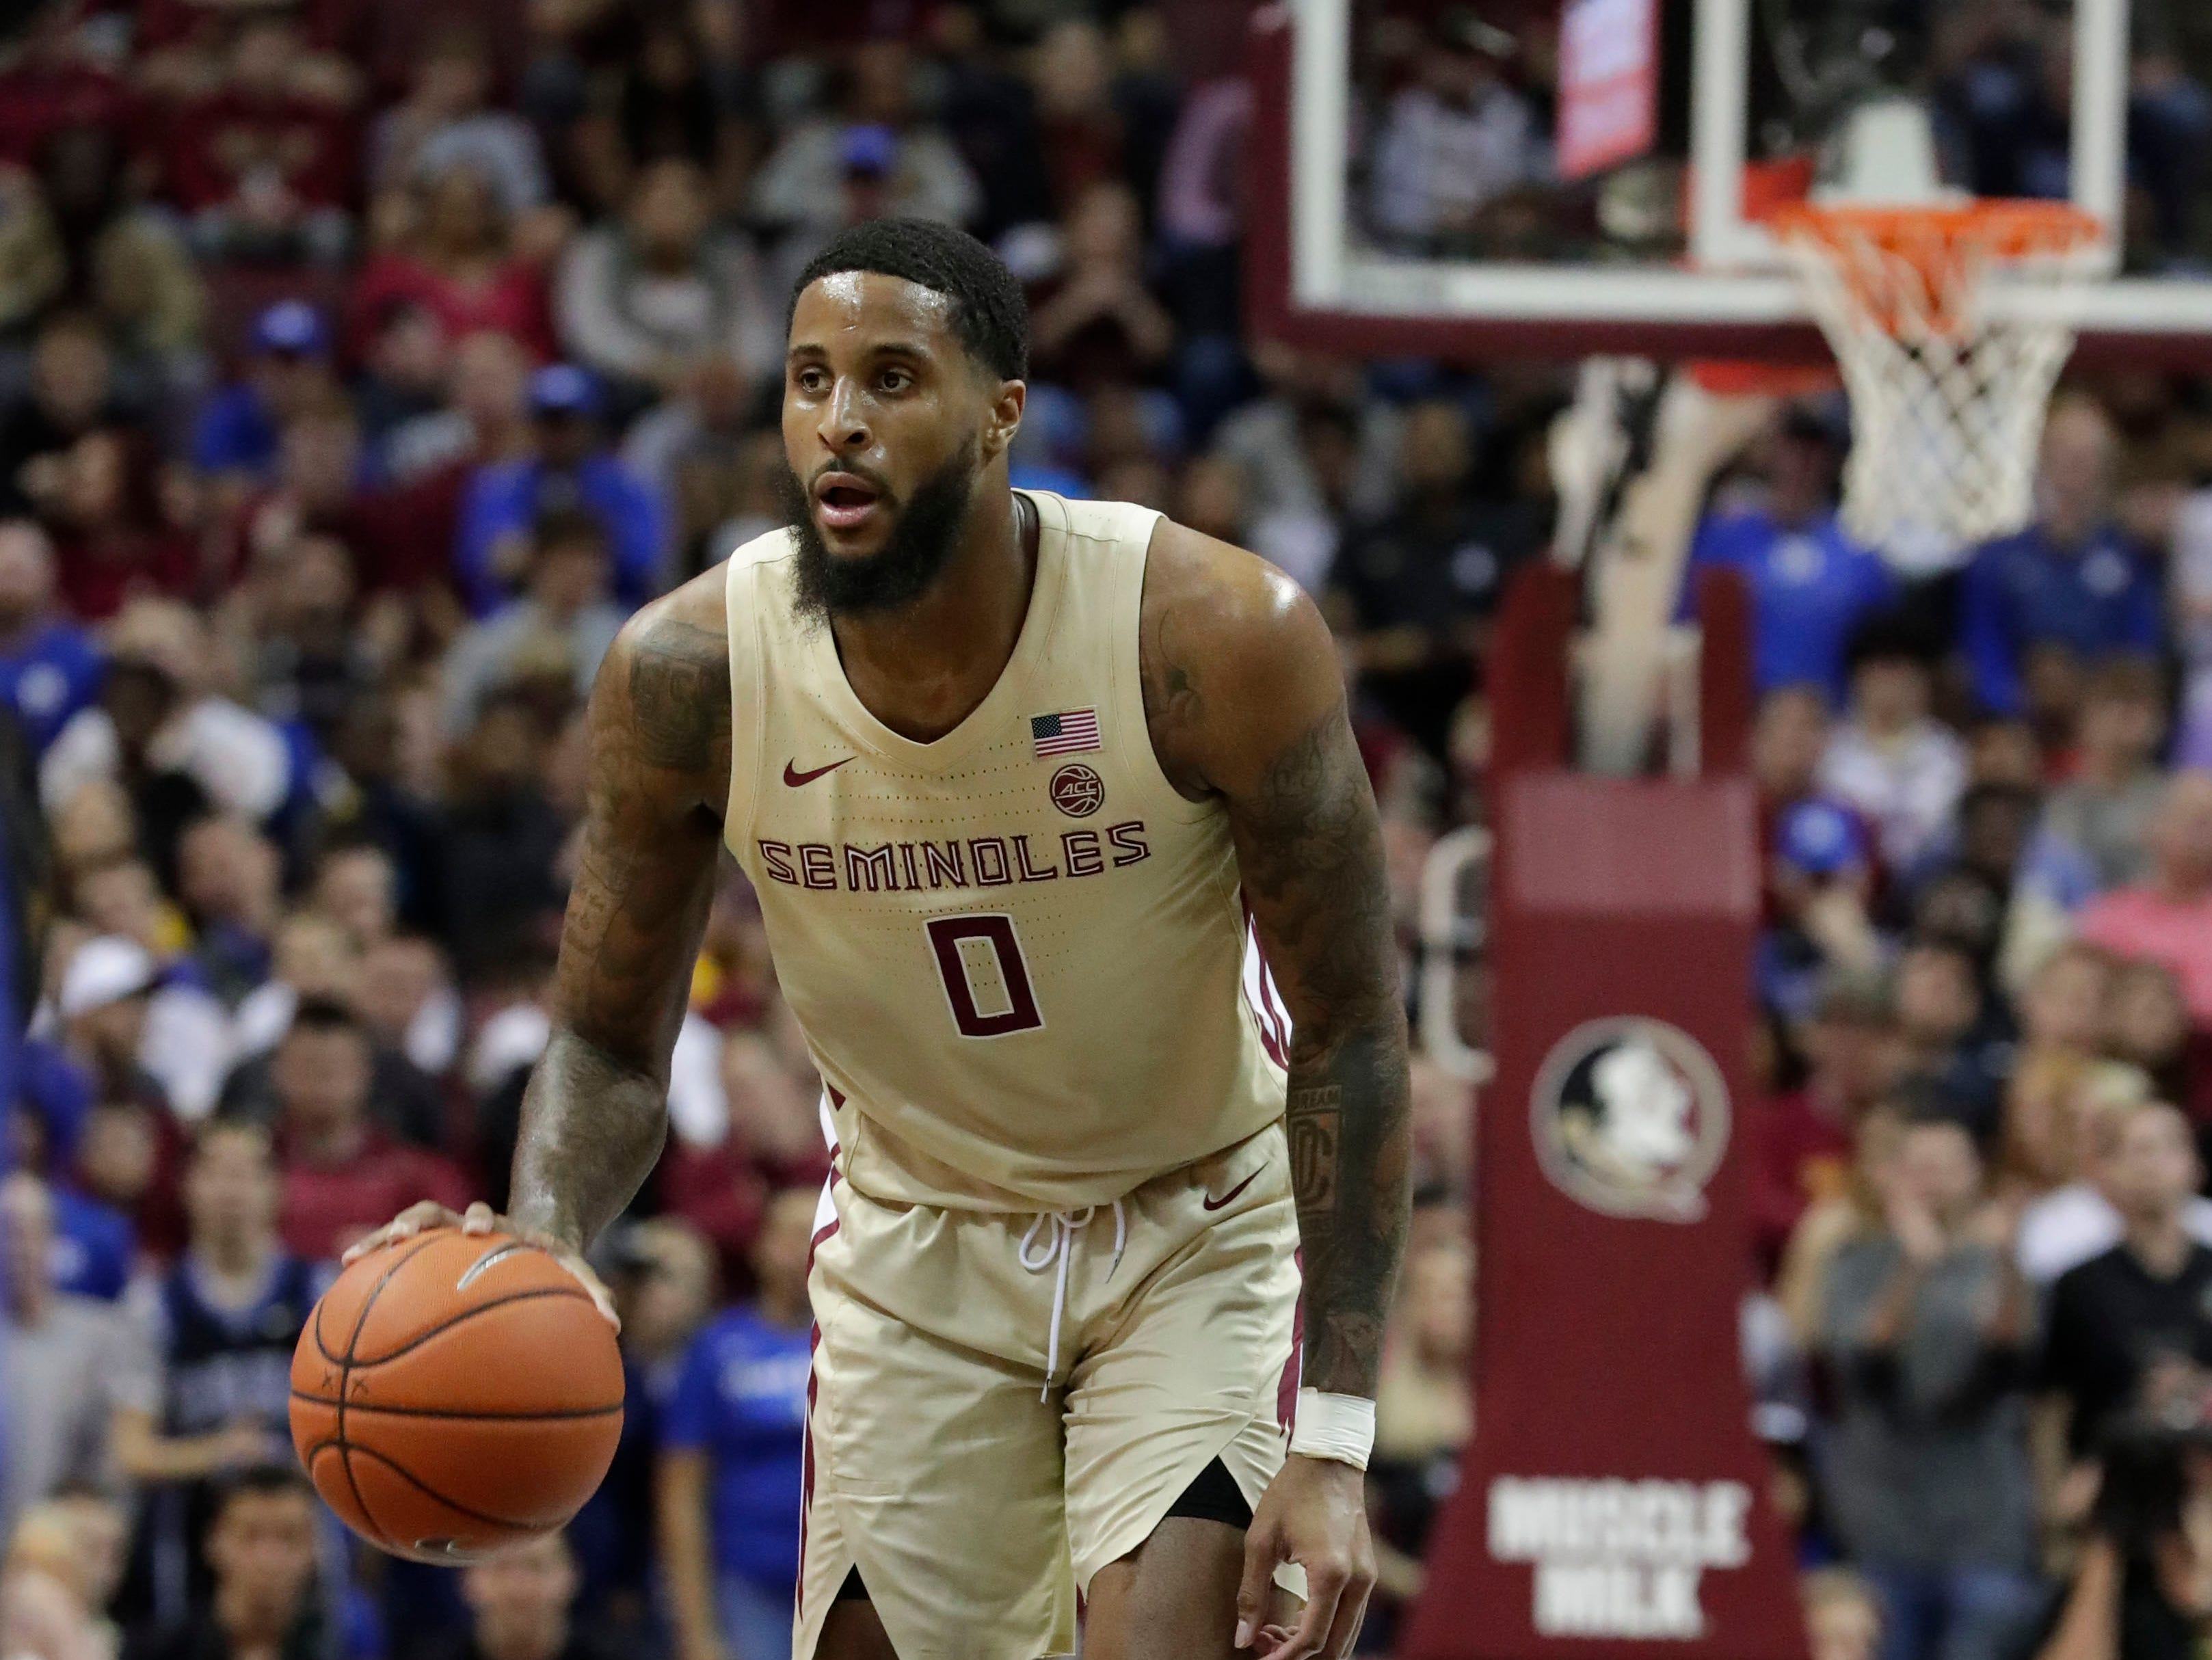 Florida State Seminoles forward Phil Cofer (0) awaits a teammate to set a pick. Ranked 13 in the ACC, the Florida State Seminoles host the number 1 team, the Duke Blue Devils, at the Tucker Civic Center, Saturday, Jan. 12, 2019.